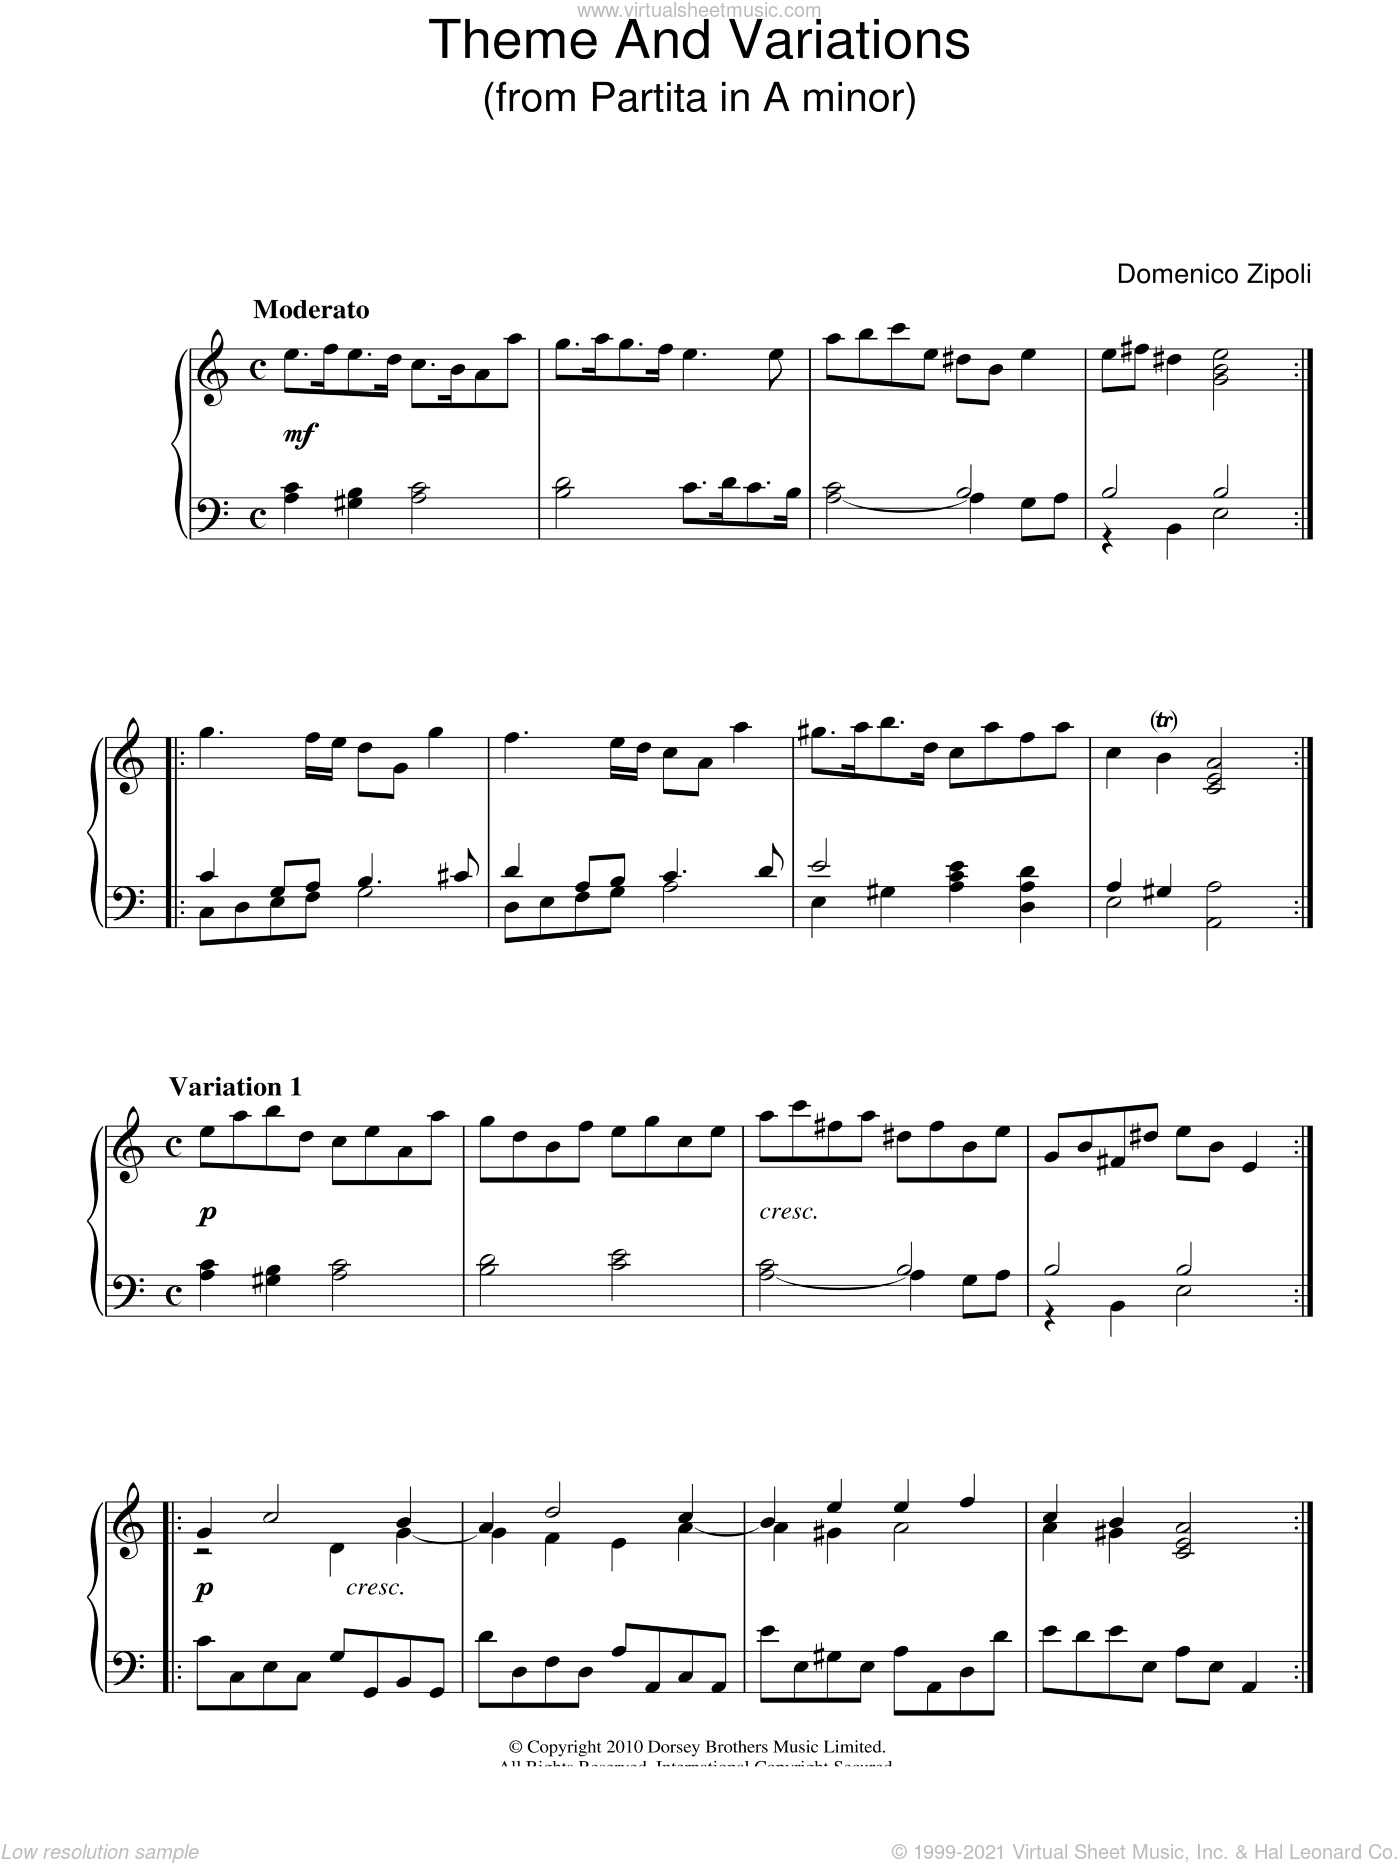 Theme And Variations From Partita In A Minor sheet music for piano solo by Domenico Zipoli